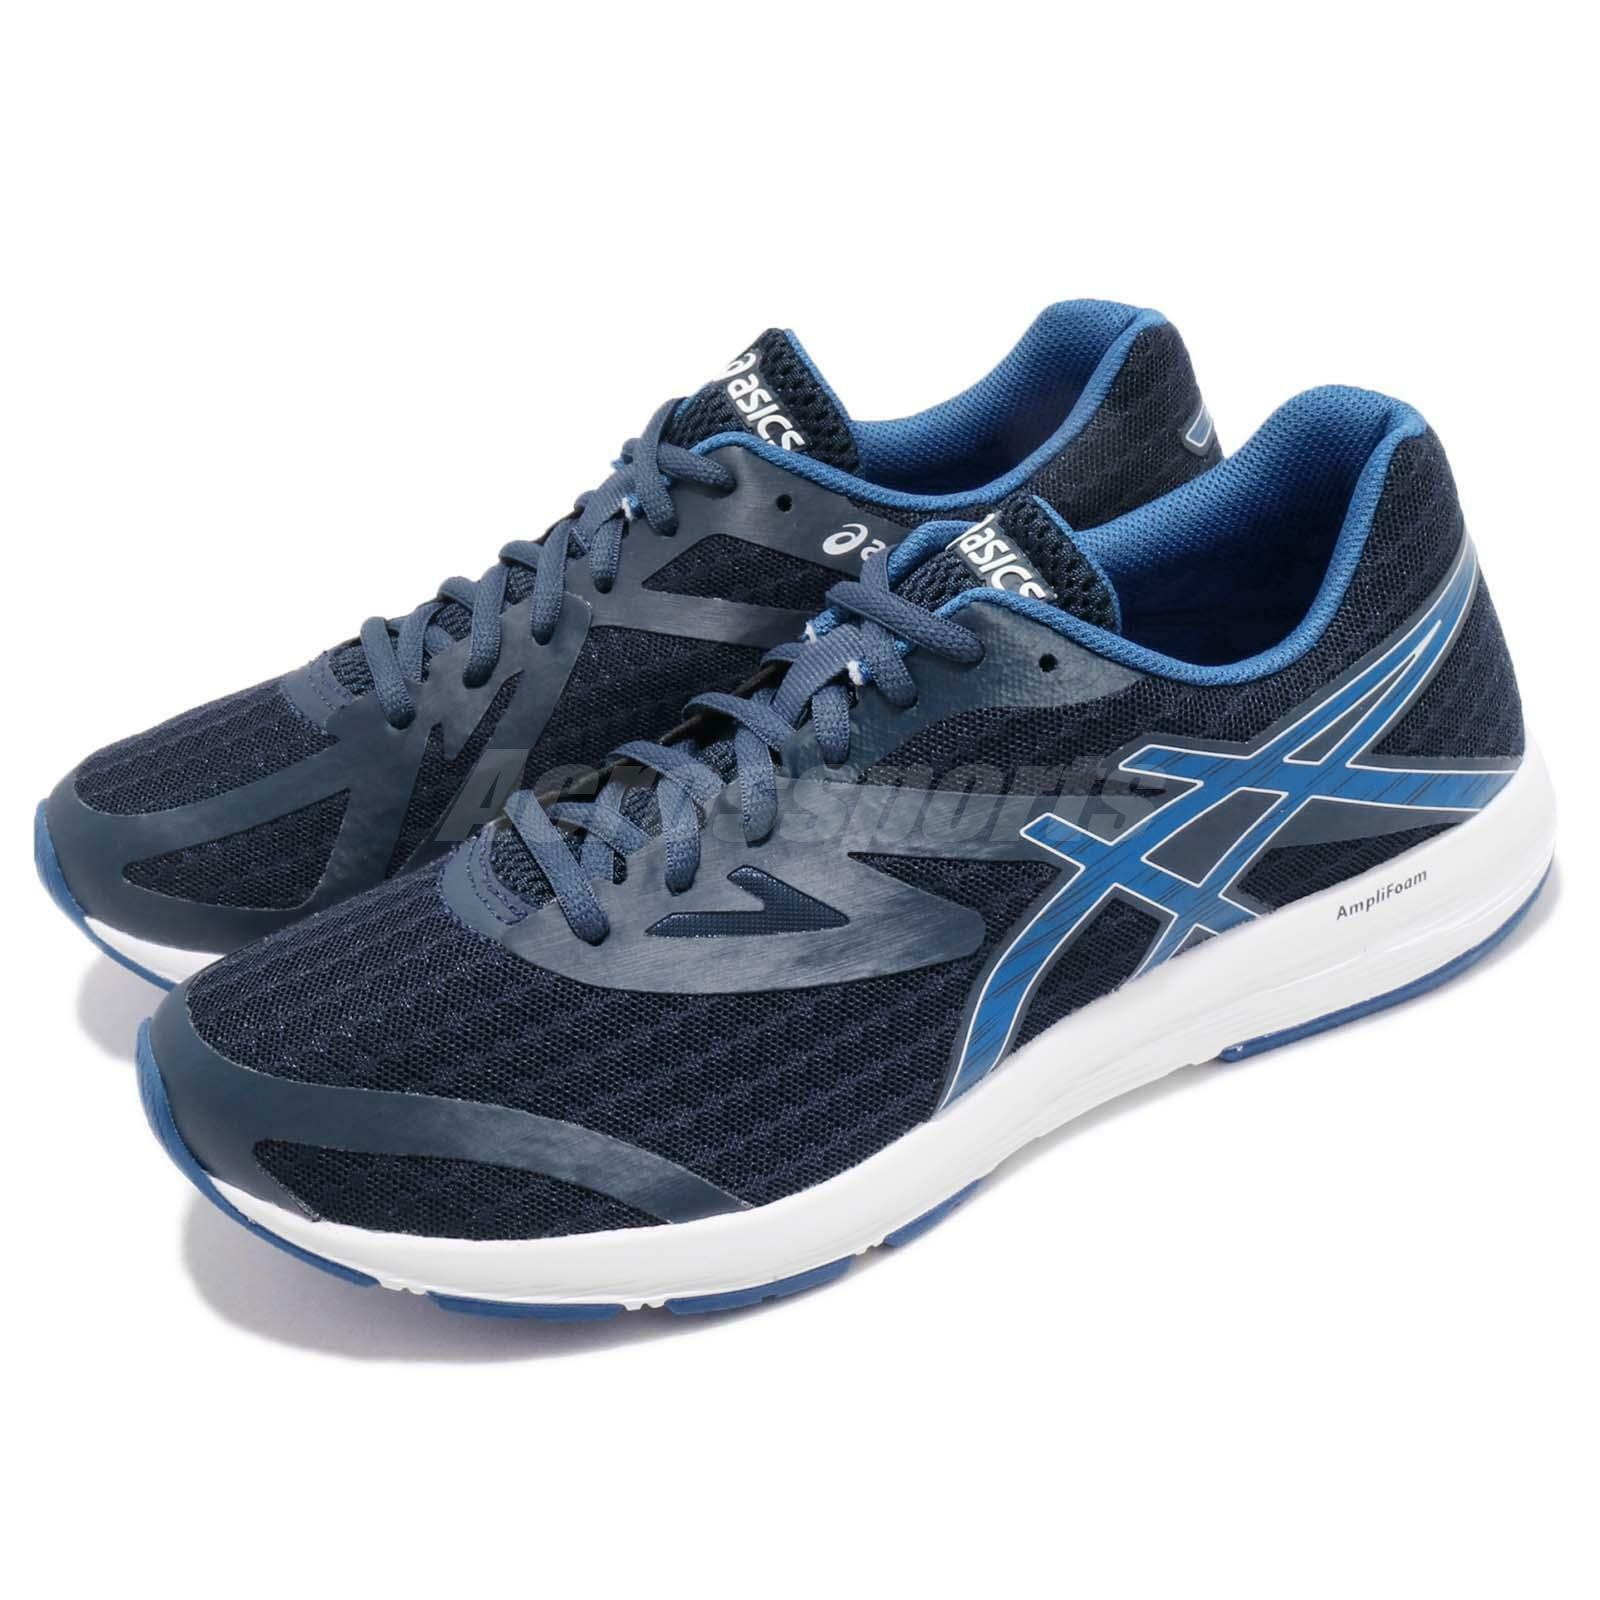 Asics Amplica Navy Blue White Men Running Training Shoes Sneakers T825N-4945 | Prezzo speciale  | Uomini/Donne Scarpa